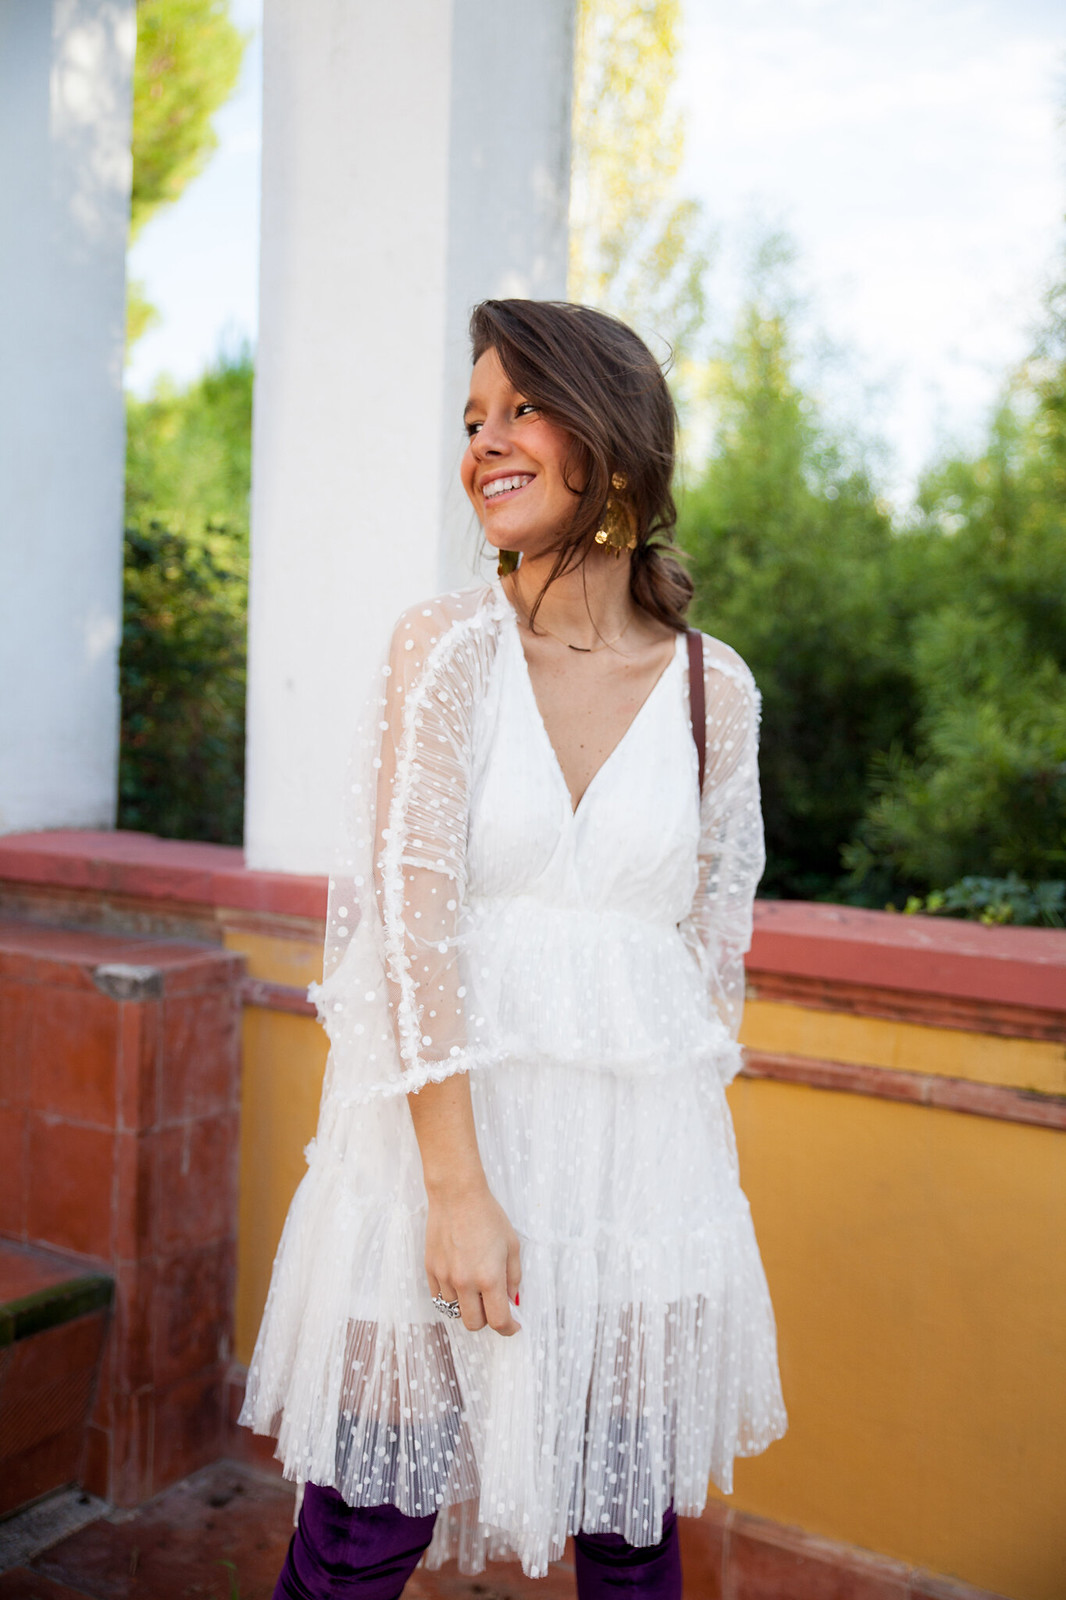 03_DANITY_BOHO_WHITE_DRESS_THEGUESTGIRL_AMBASSADOR_PARTY_DRESS_VESTIDOS_FIESTA_NAVIDADES_TENDENCIA